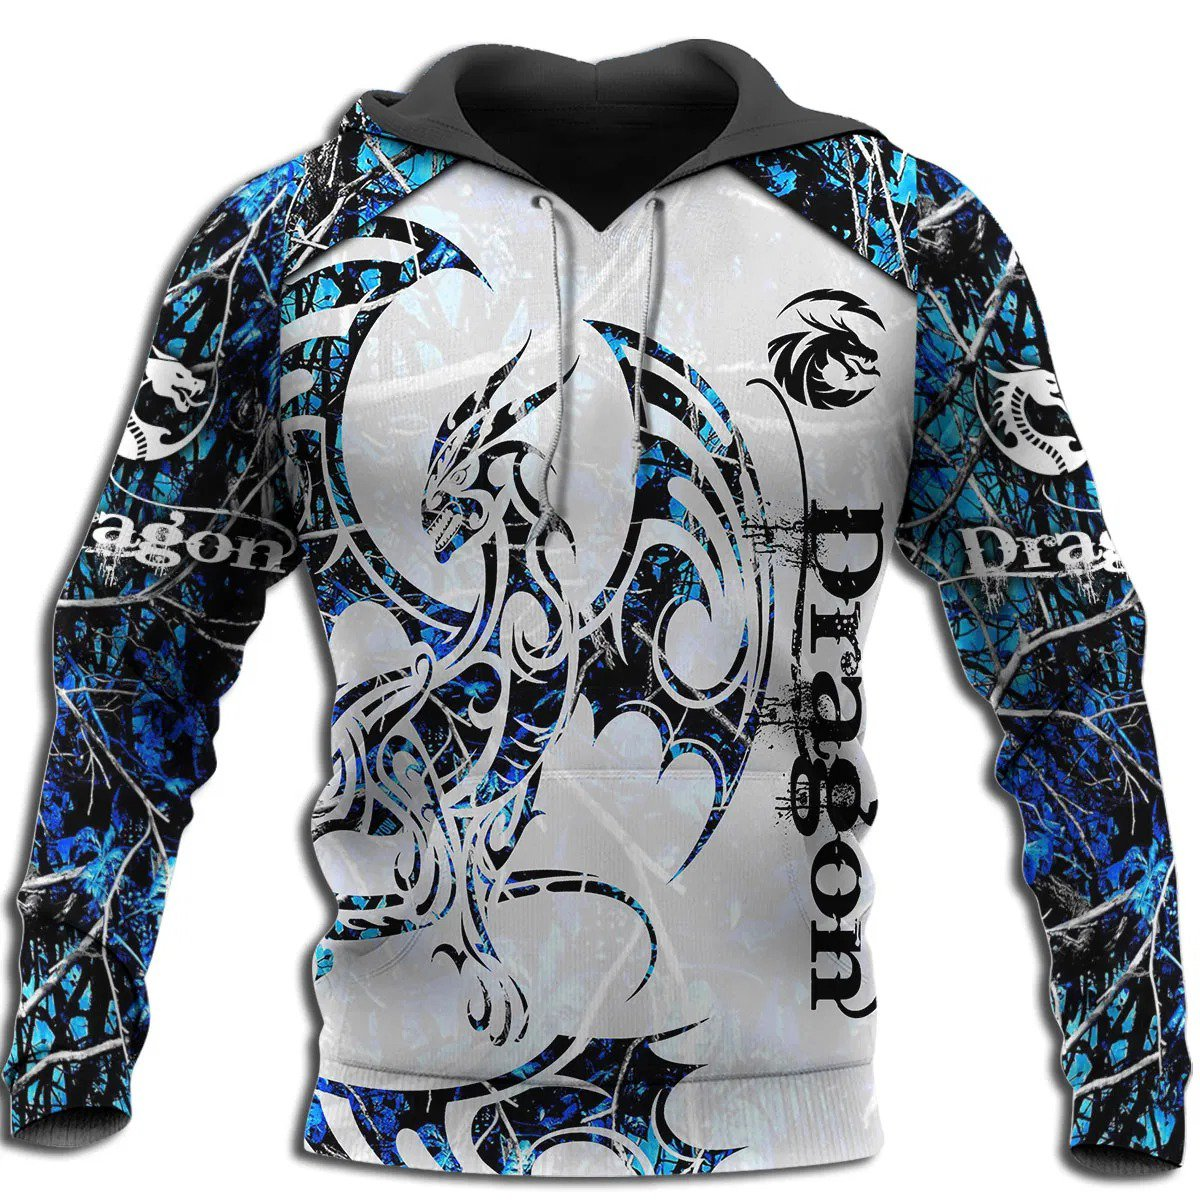 3D Tattoo and Dungeon Dragon Hoodie T Shirt For Men and Women NM050945-Apparel-NM-Hoodie-S-Vibe Cosy™